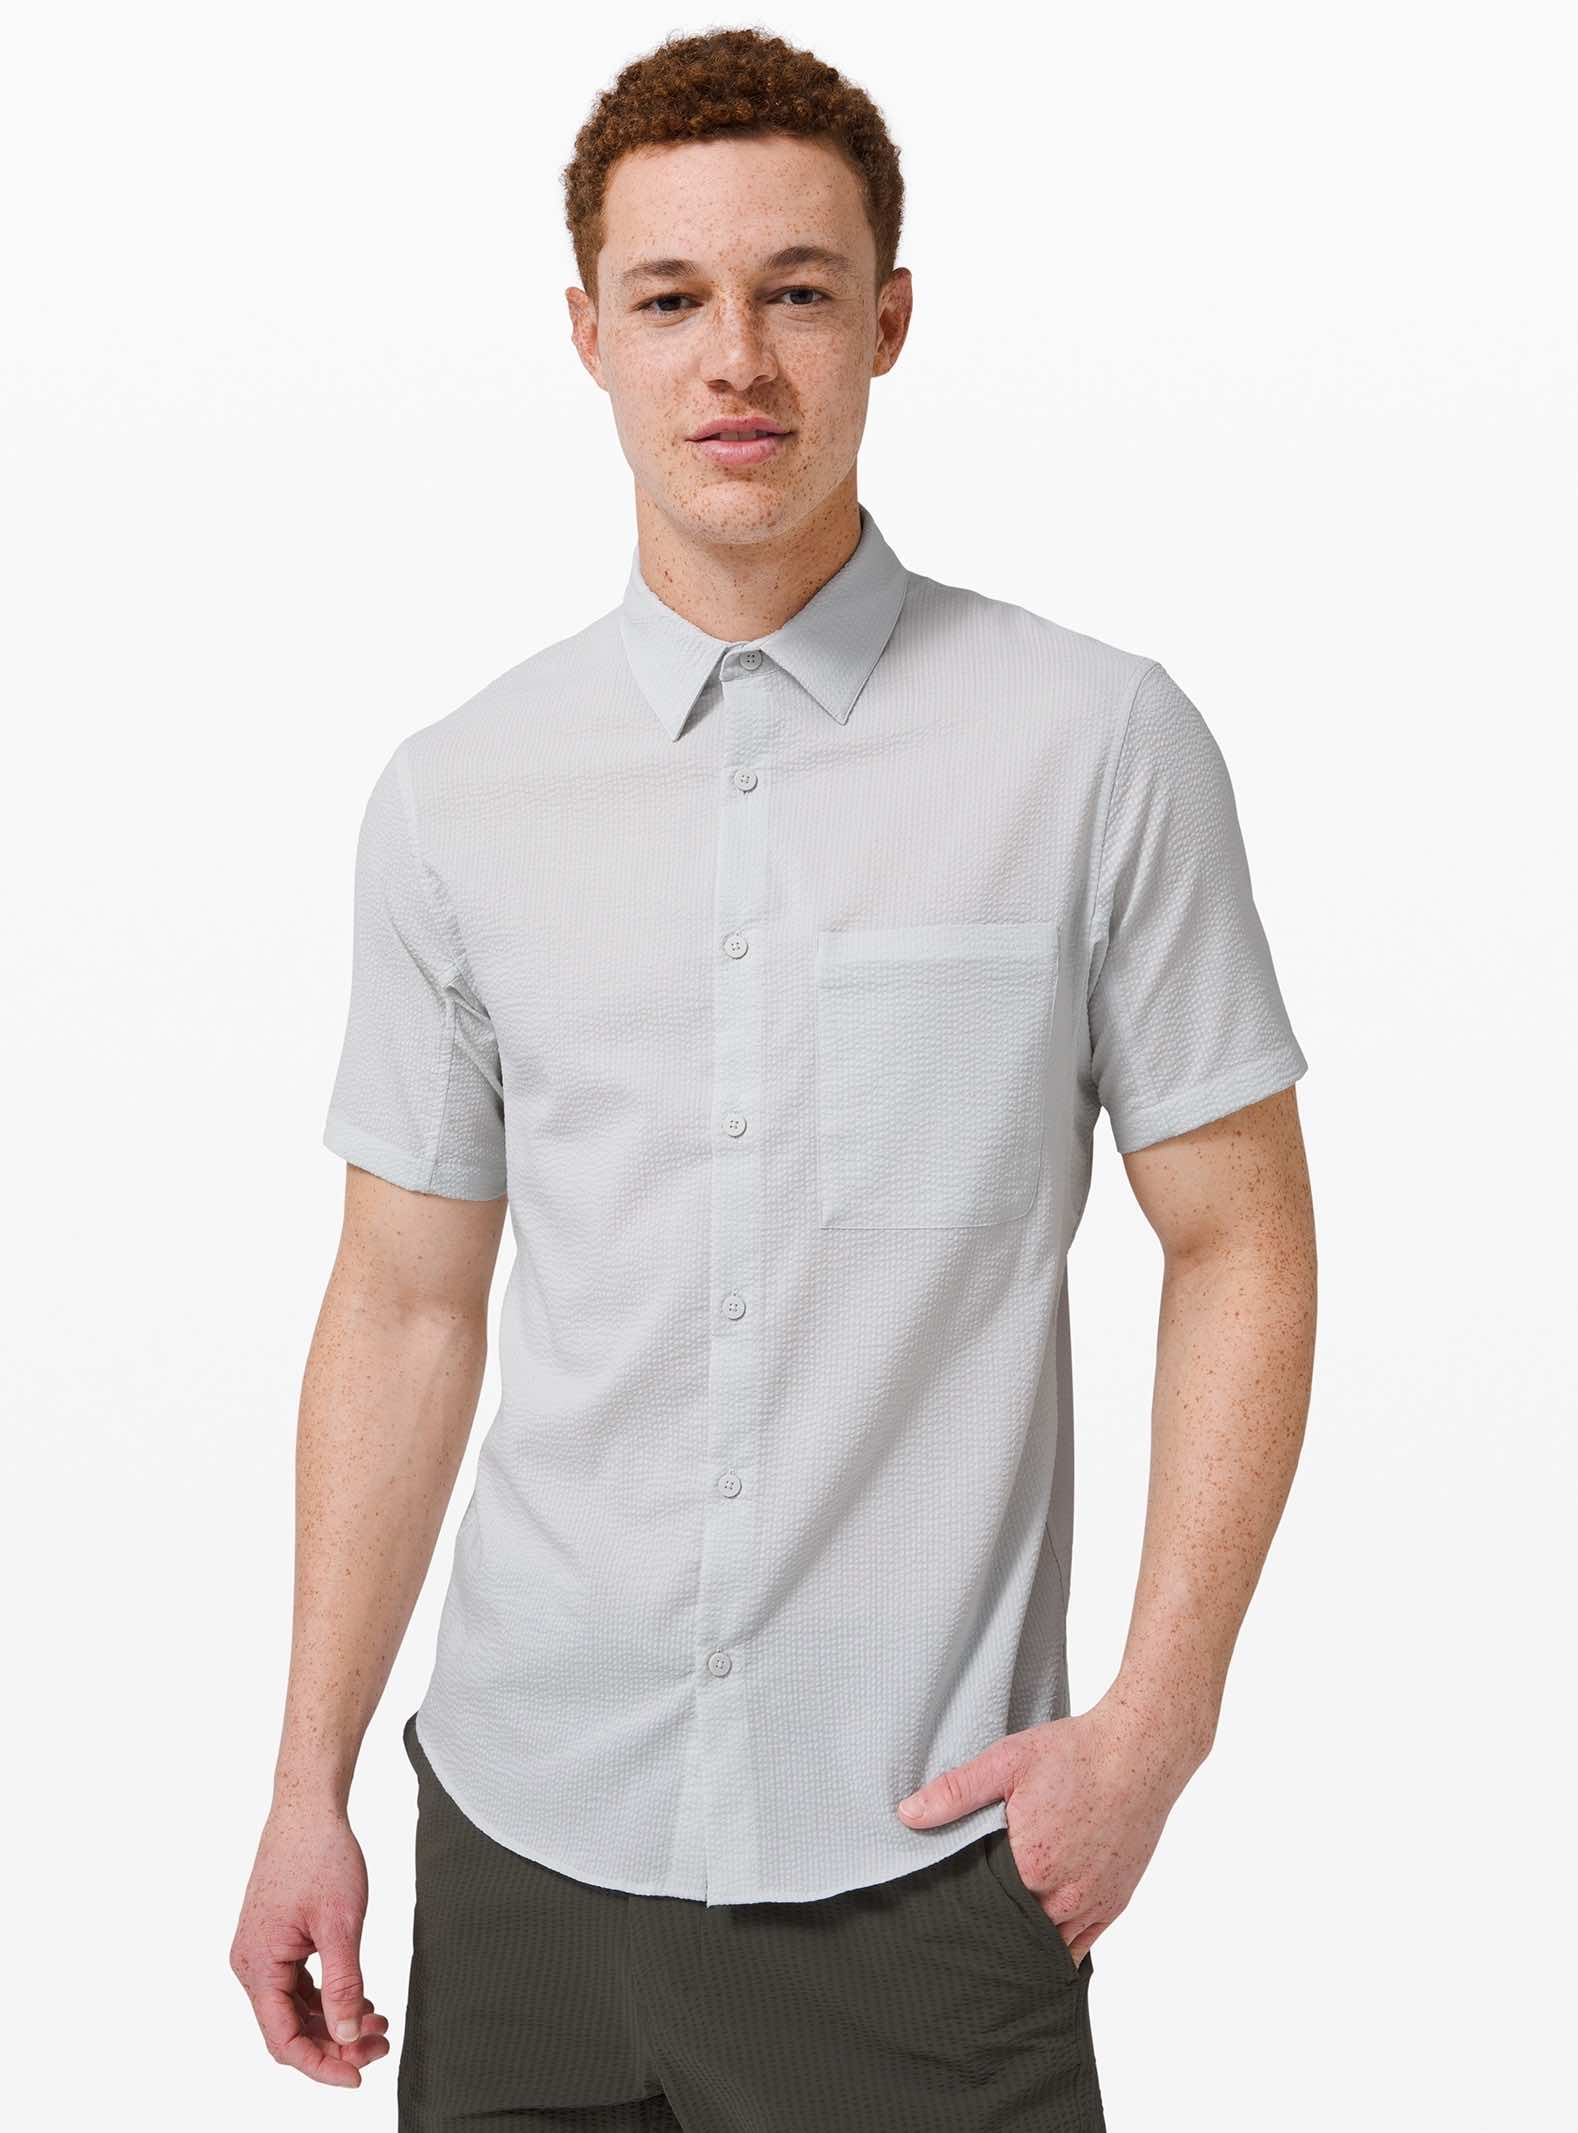 Street Lite Short Sleeve Shirt